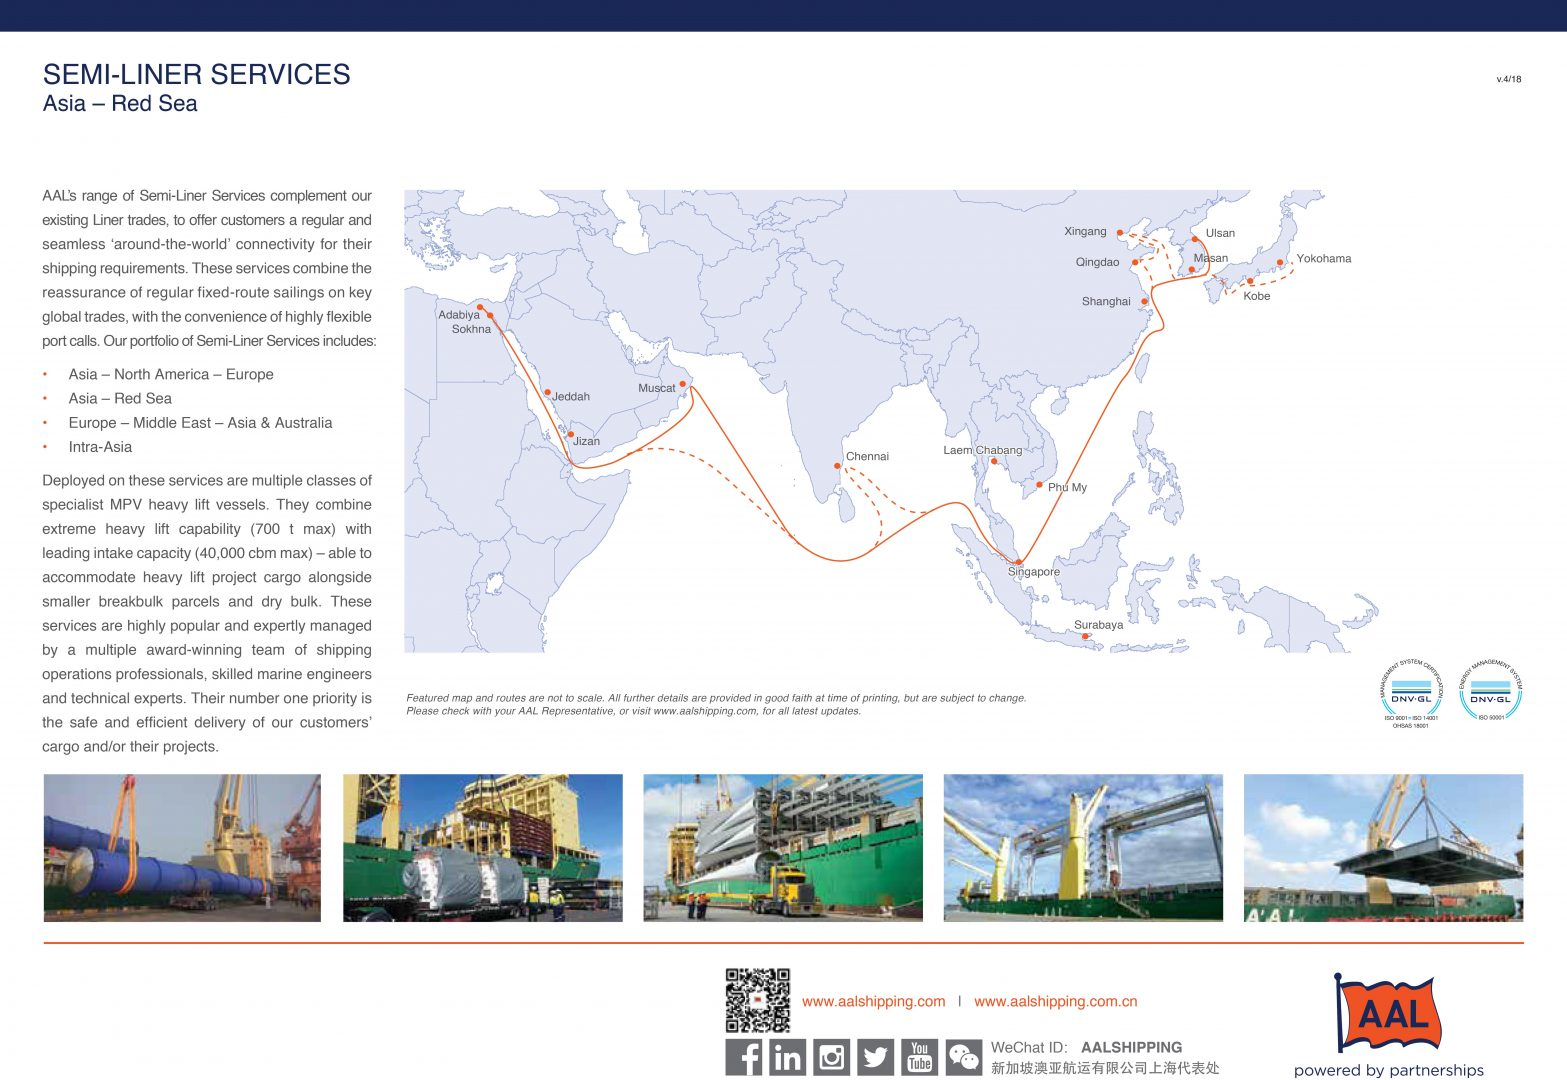 Asia - Red Sea Semi-Liner Service Route Map